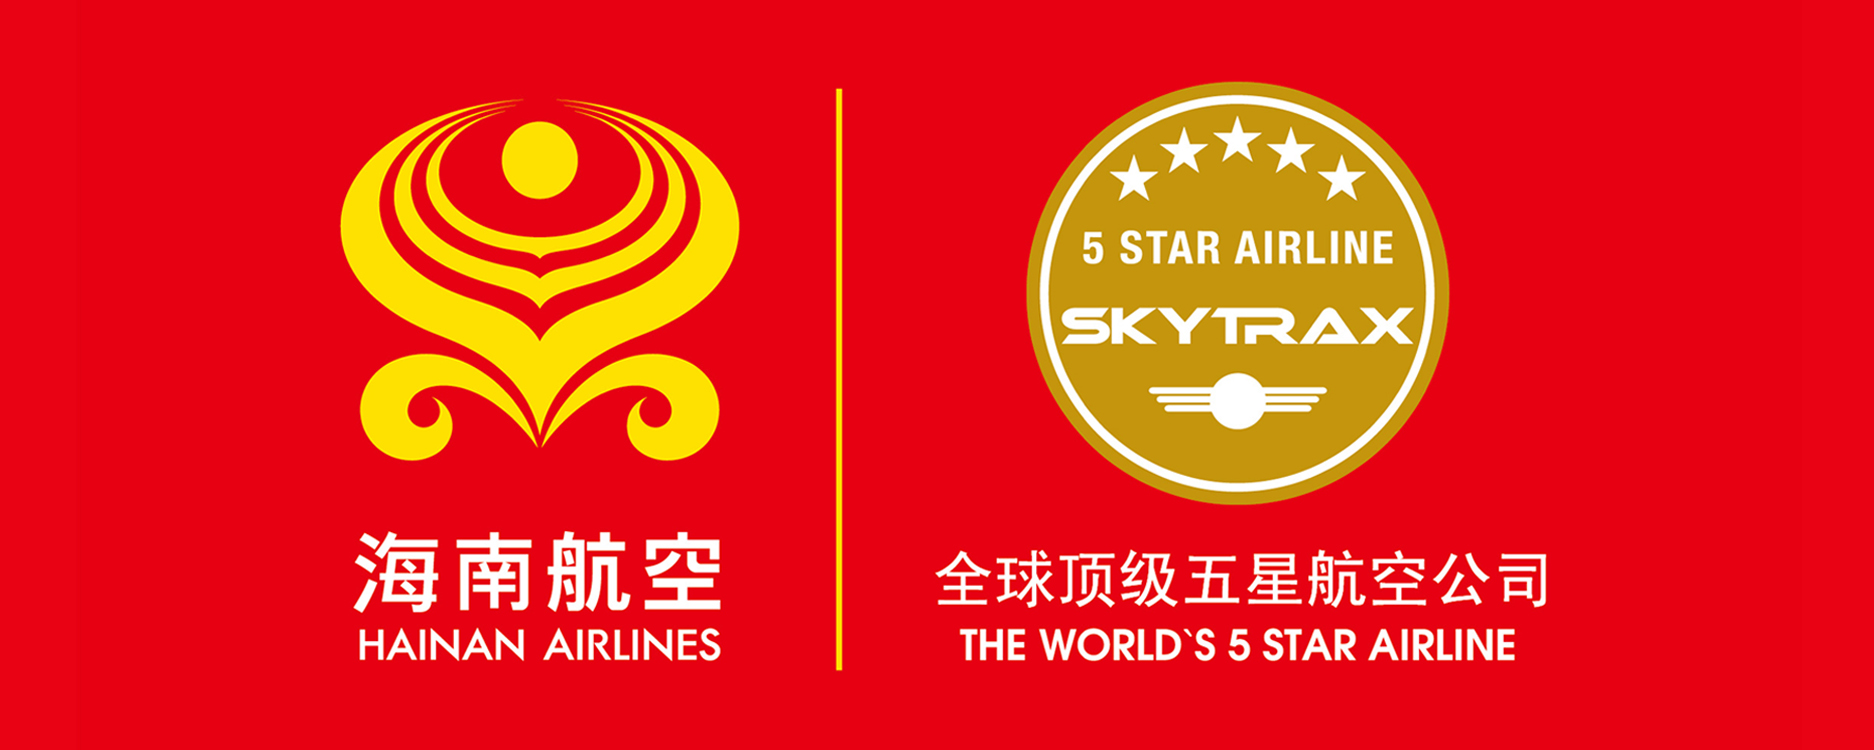 Hainan Airlines Five Star Airline